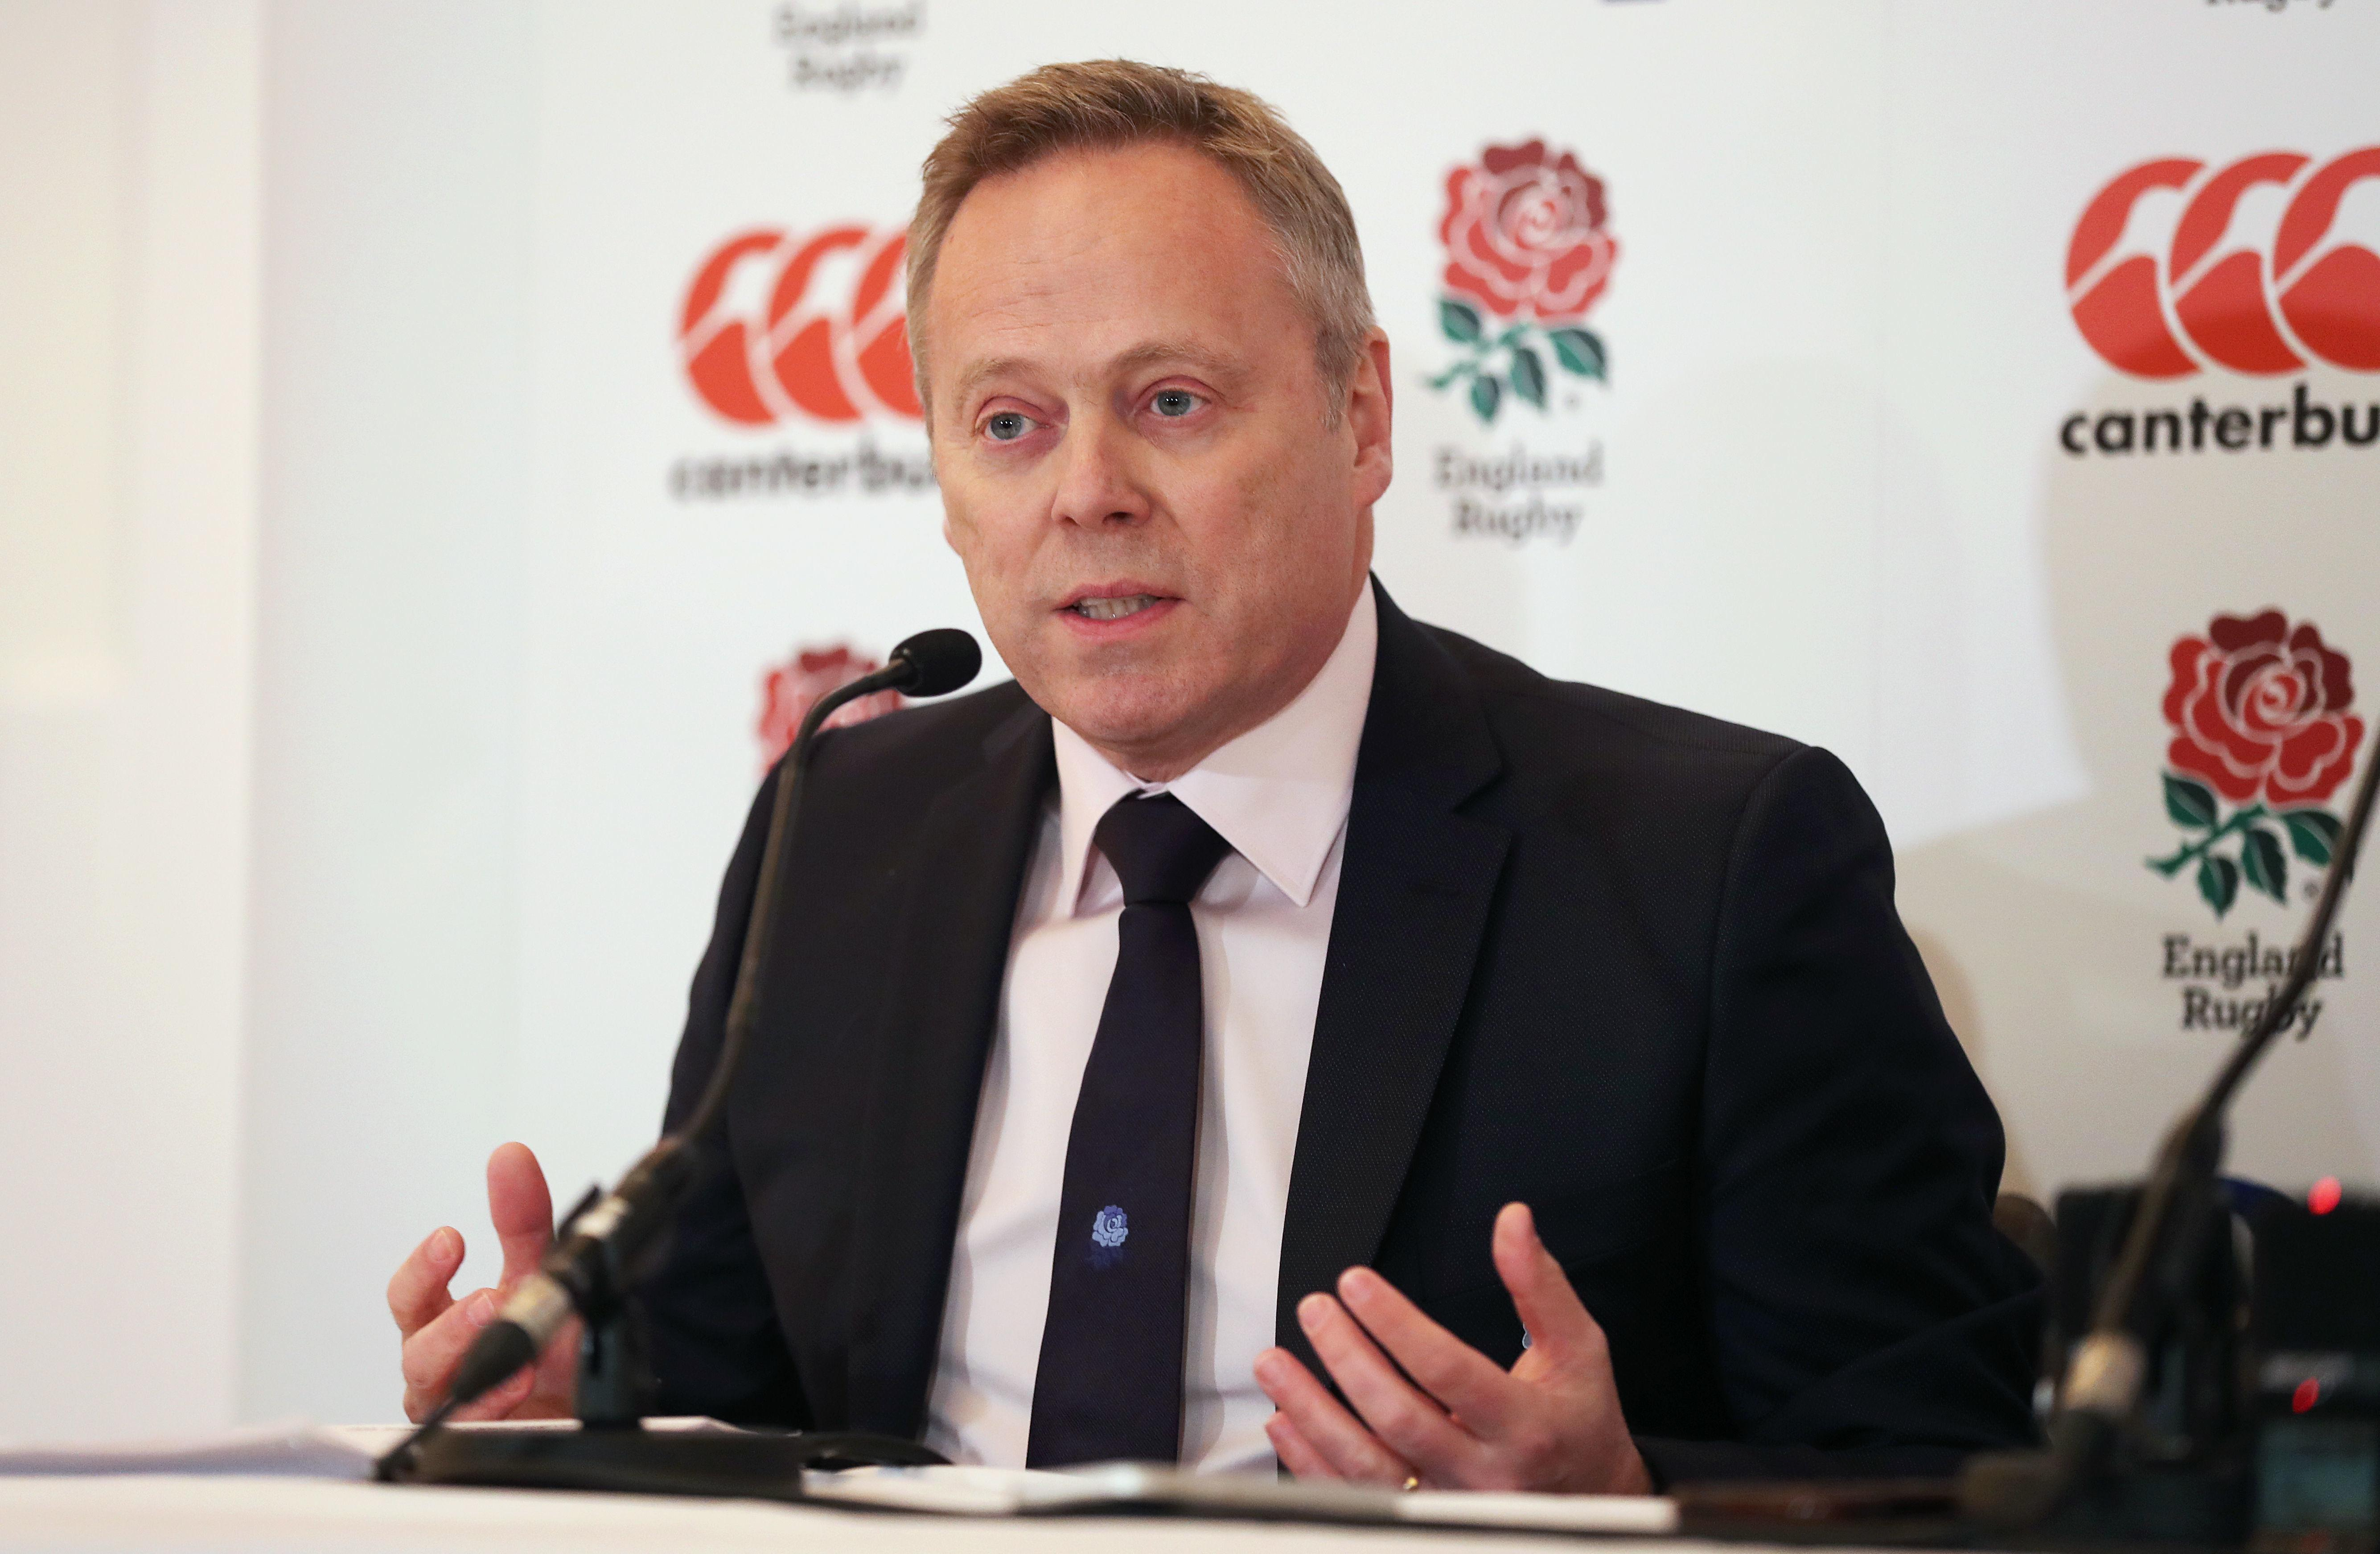 The RFU has been thrown into turmoil after Steve Brown stepped down